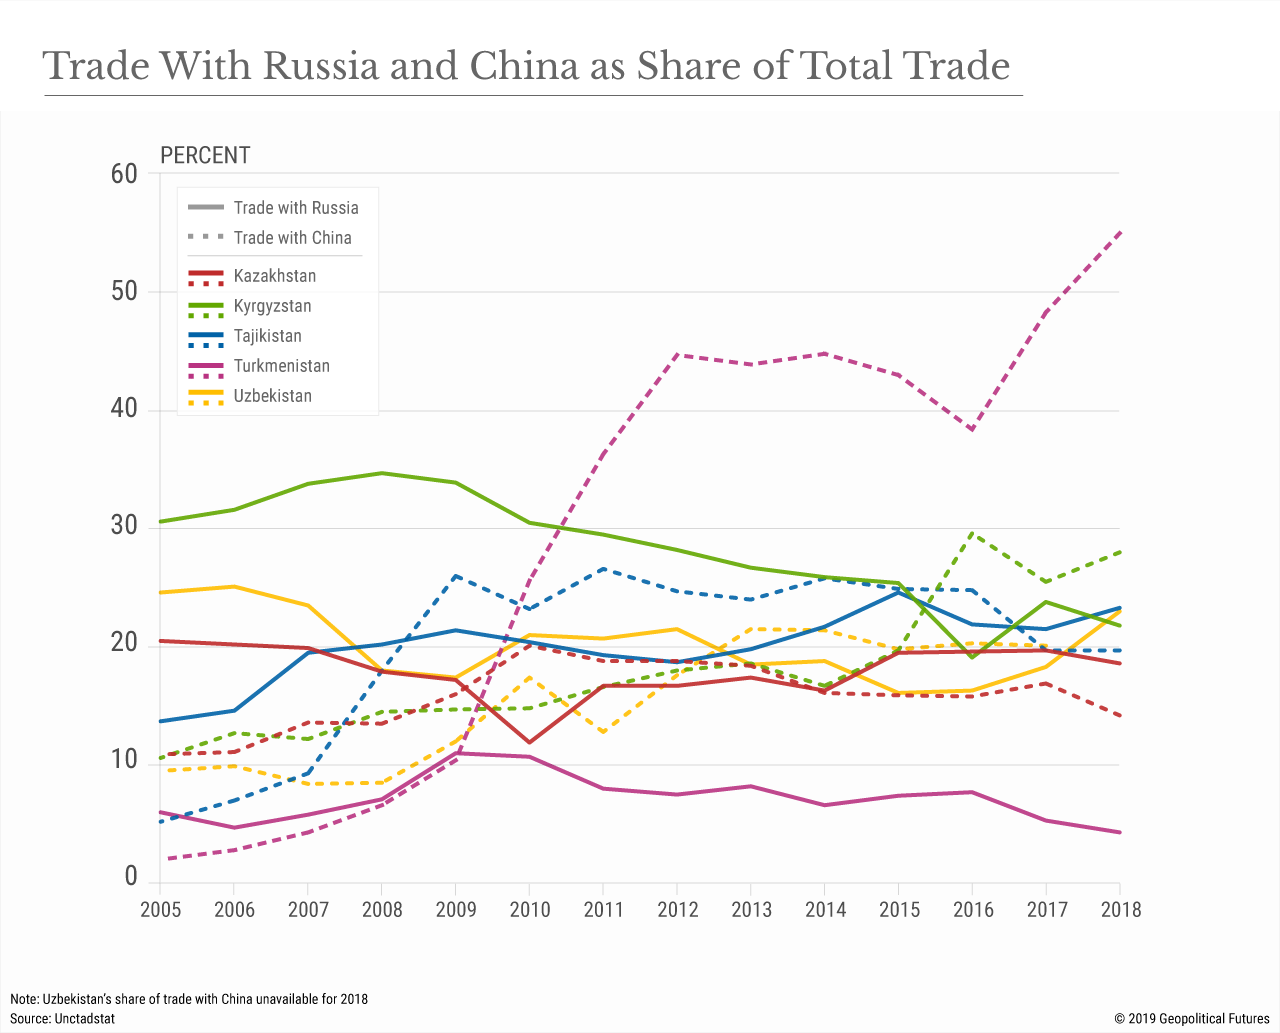 Trade With Russia and China as Share of Total Trade